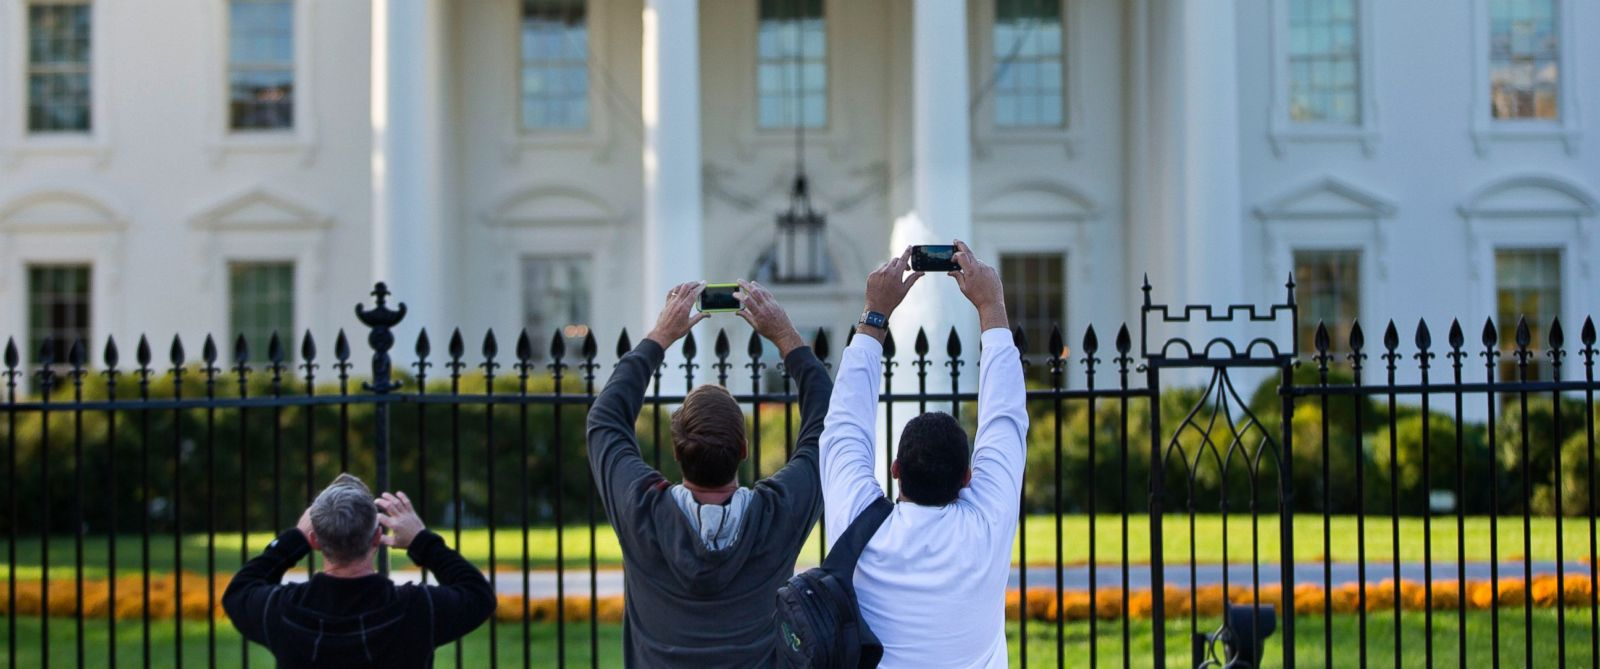 PHOTO: Visitors take photos of the White House on the sidewalk in front of the White House in Washington, Oct. 23, 2014.